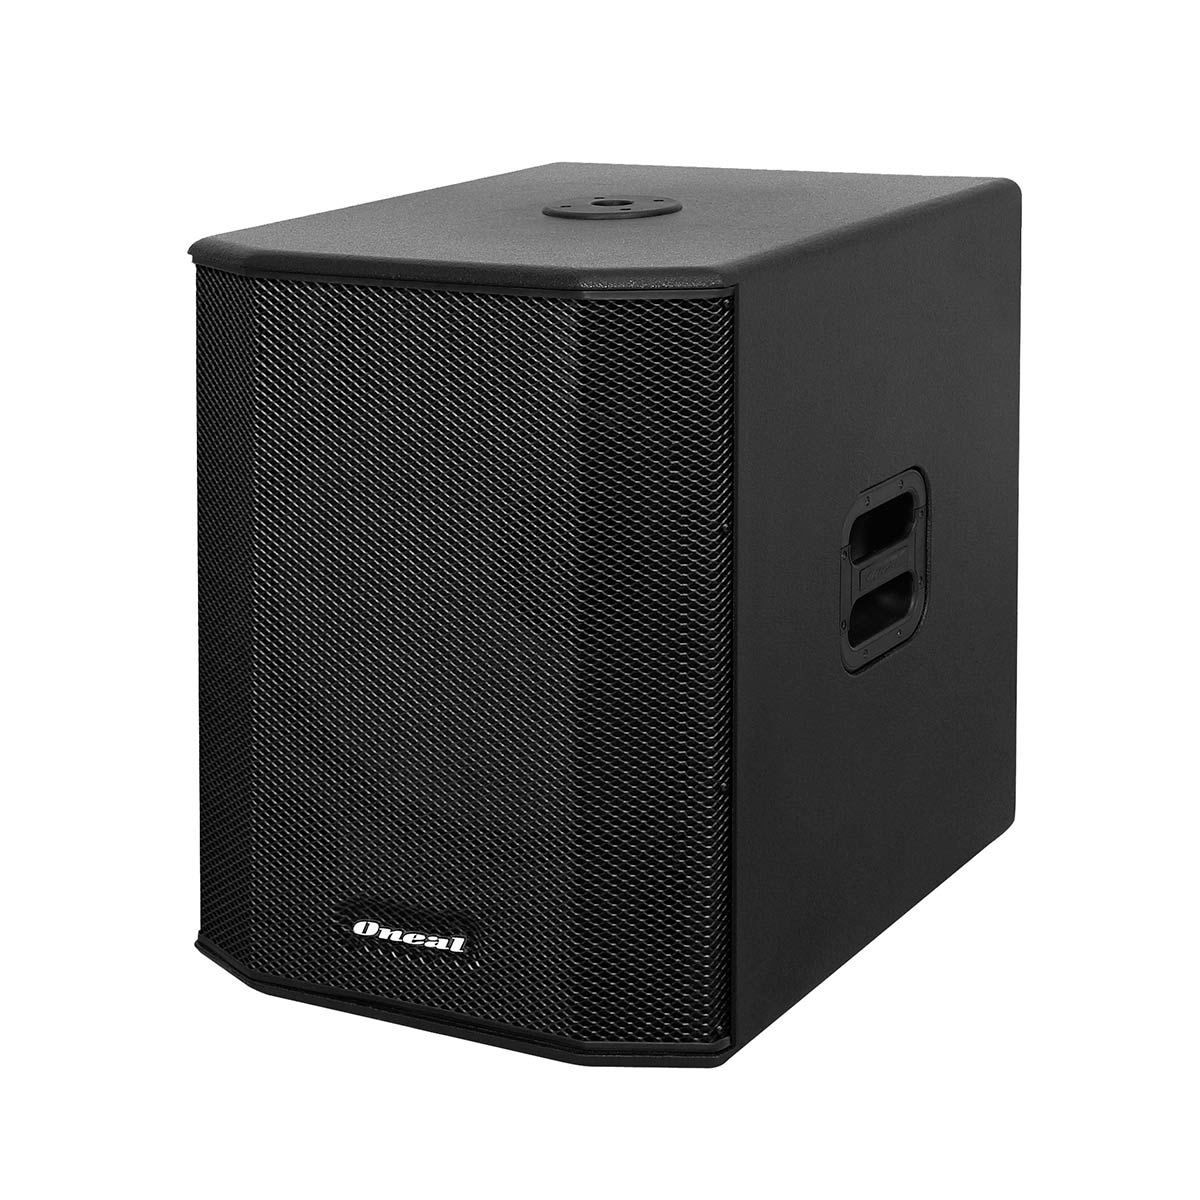 Subwoofer Ativo Fal 15 Pol 1000W - OPSB 2500 Oneal